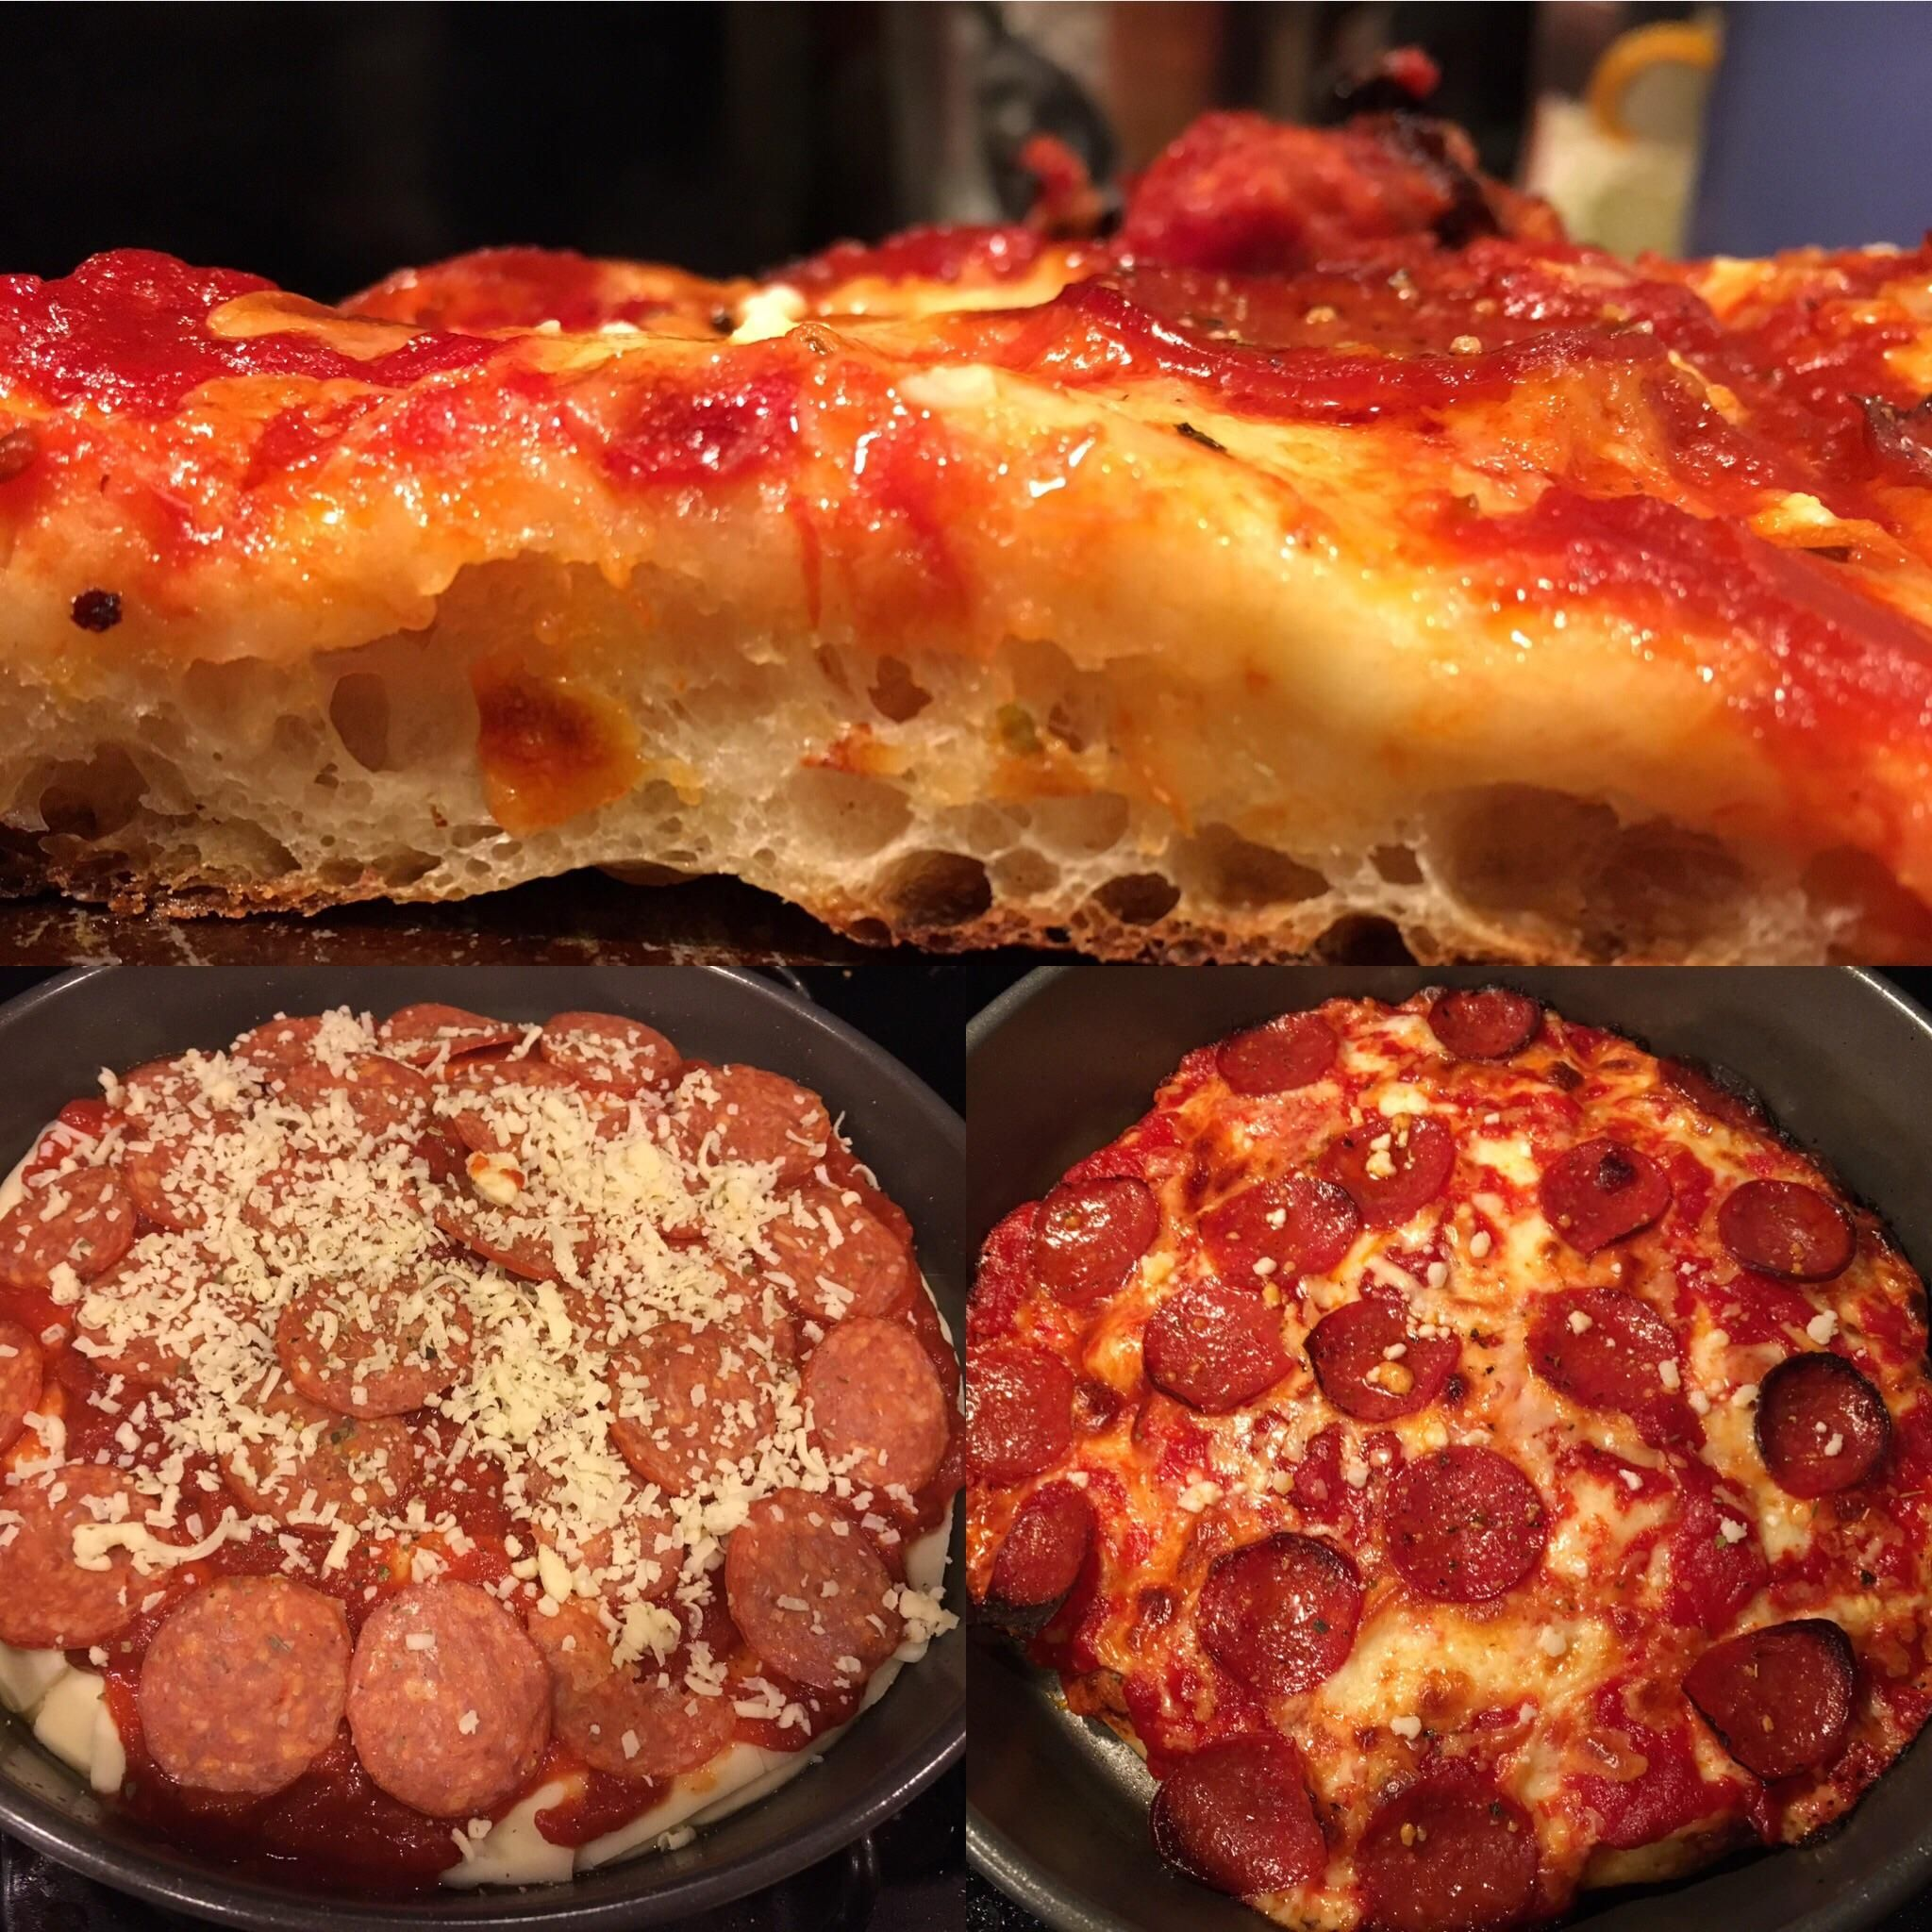 [Homemade] Detroit Style Pepperoni and Cheese Pizza. #recipes #food #cooking #delicious #foodie #foodrecipes #cook #recipe #health